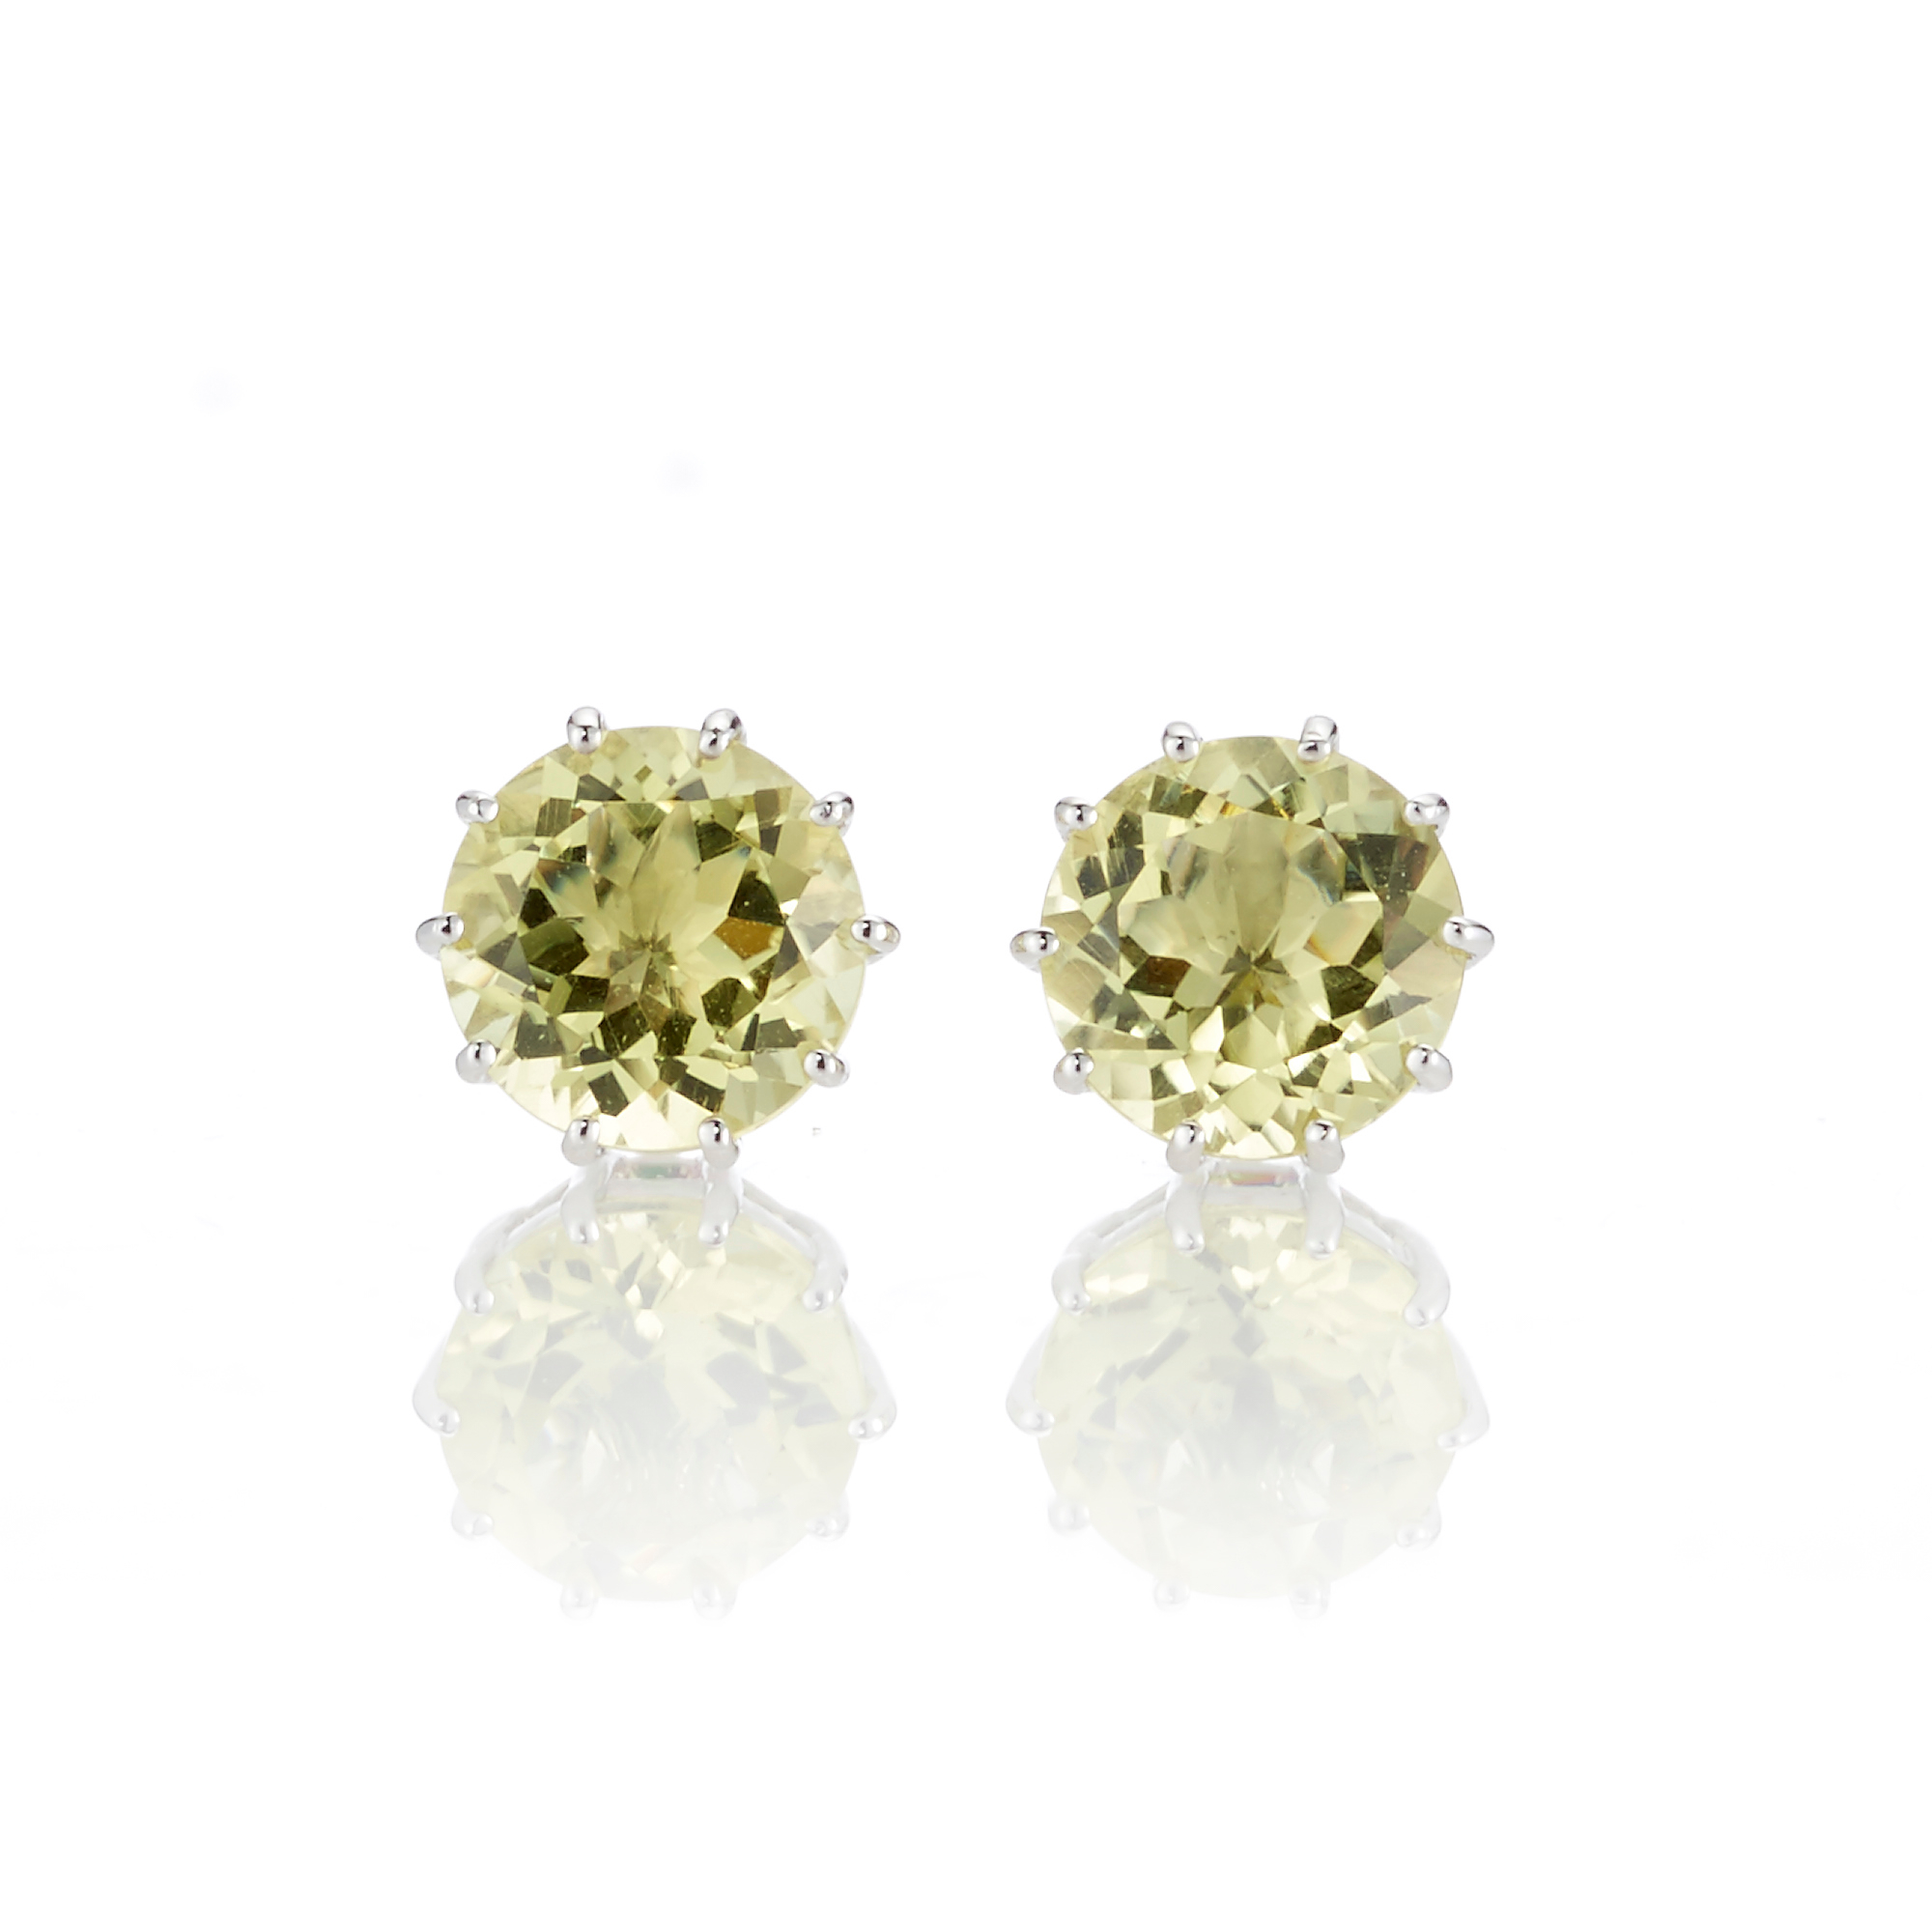 Gump's Lemon Quartz Round Stud Earrings